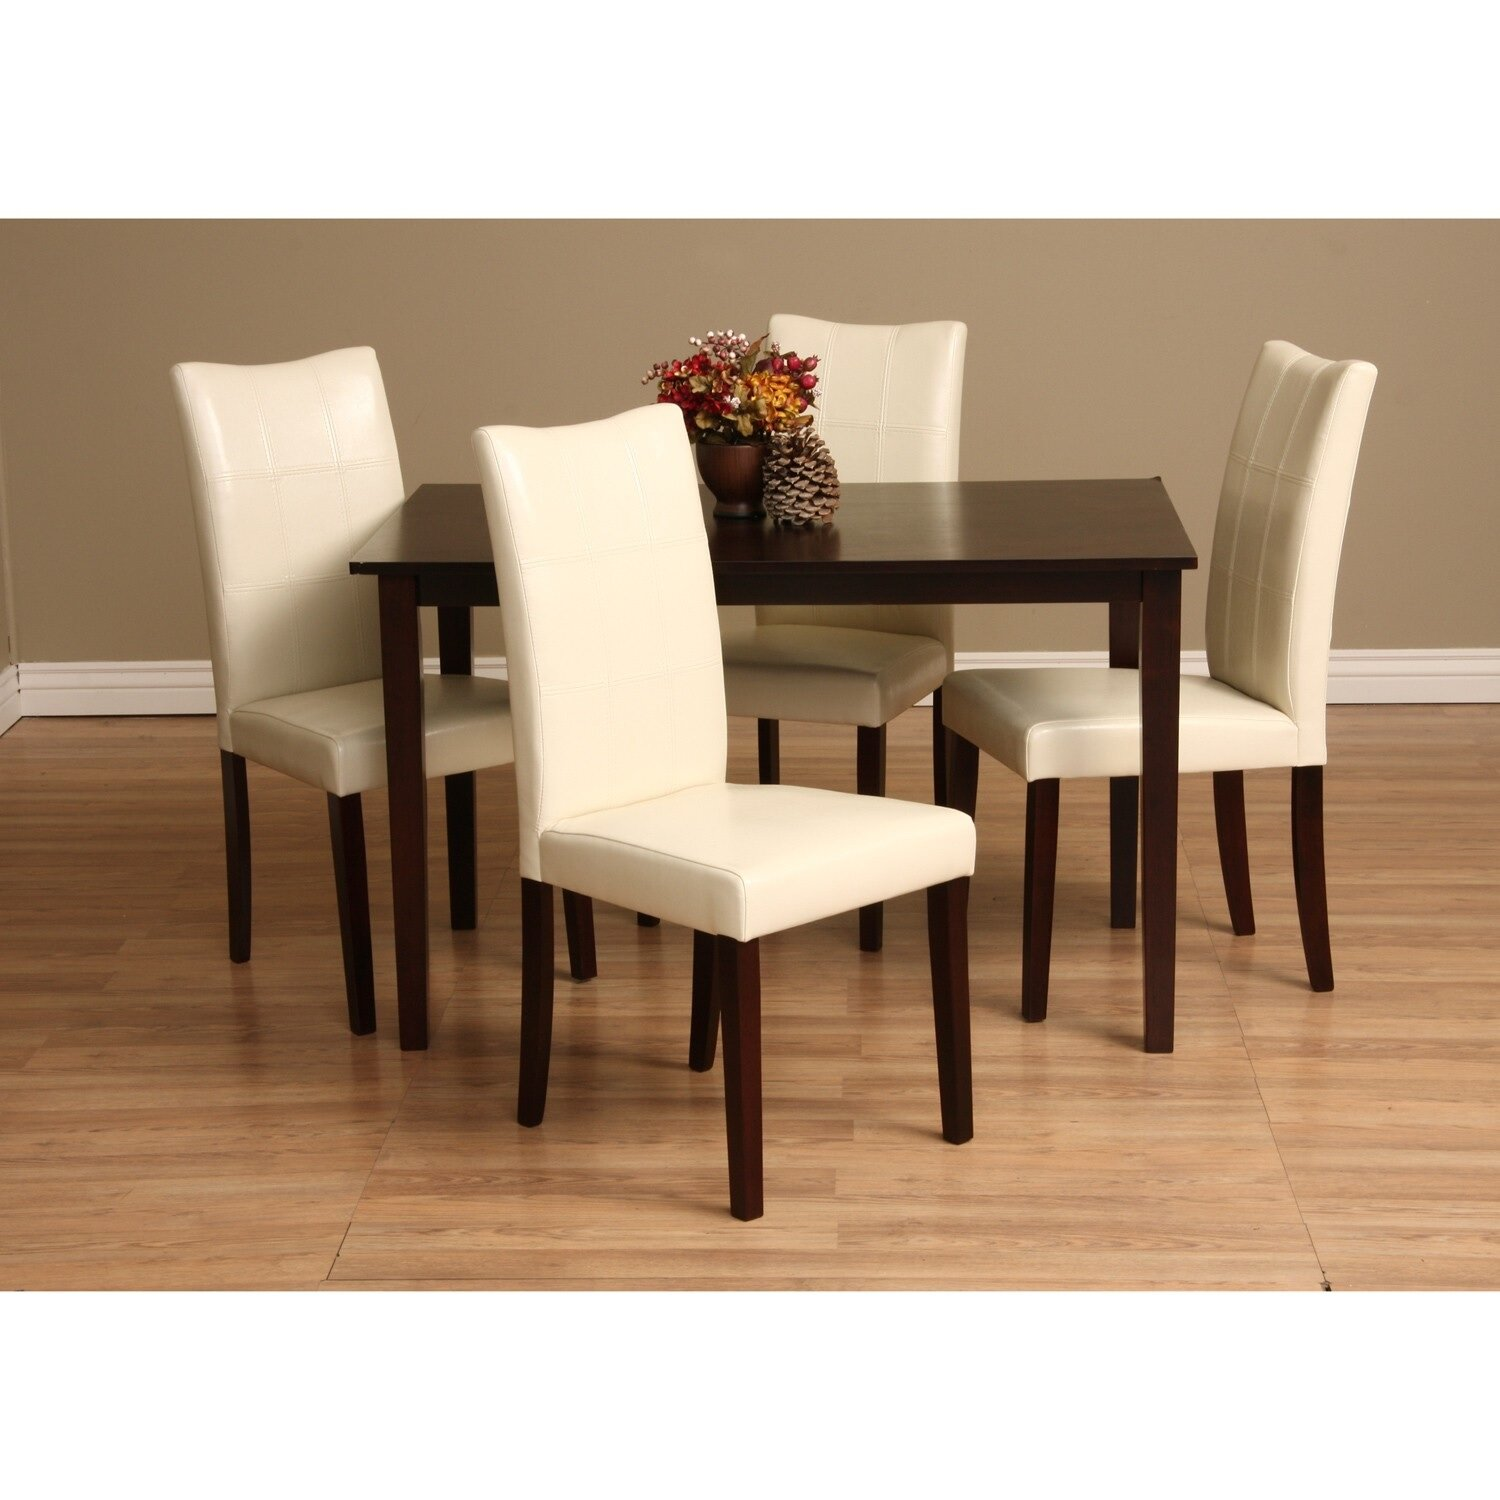 Warehouse of tiffany eveleen 5 piece dining set reviews for 5 piece dining set